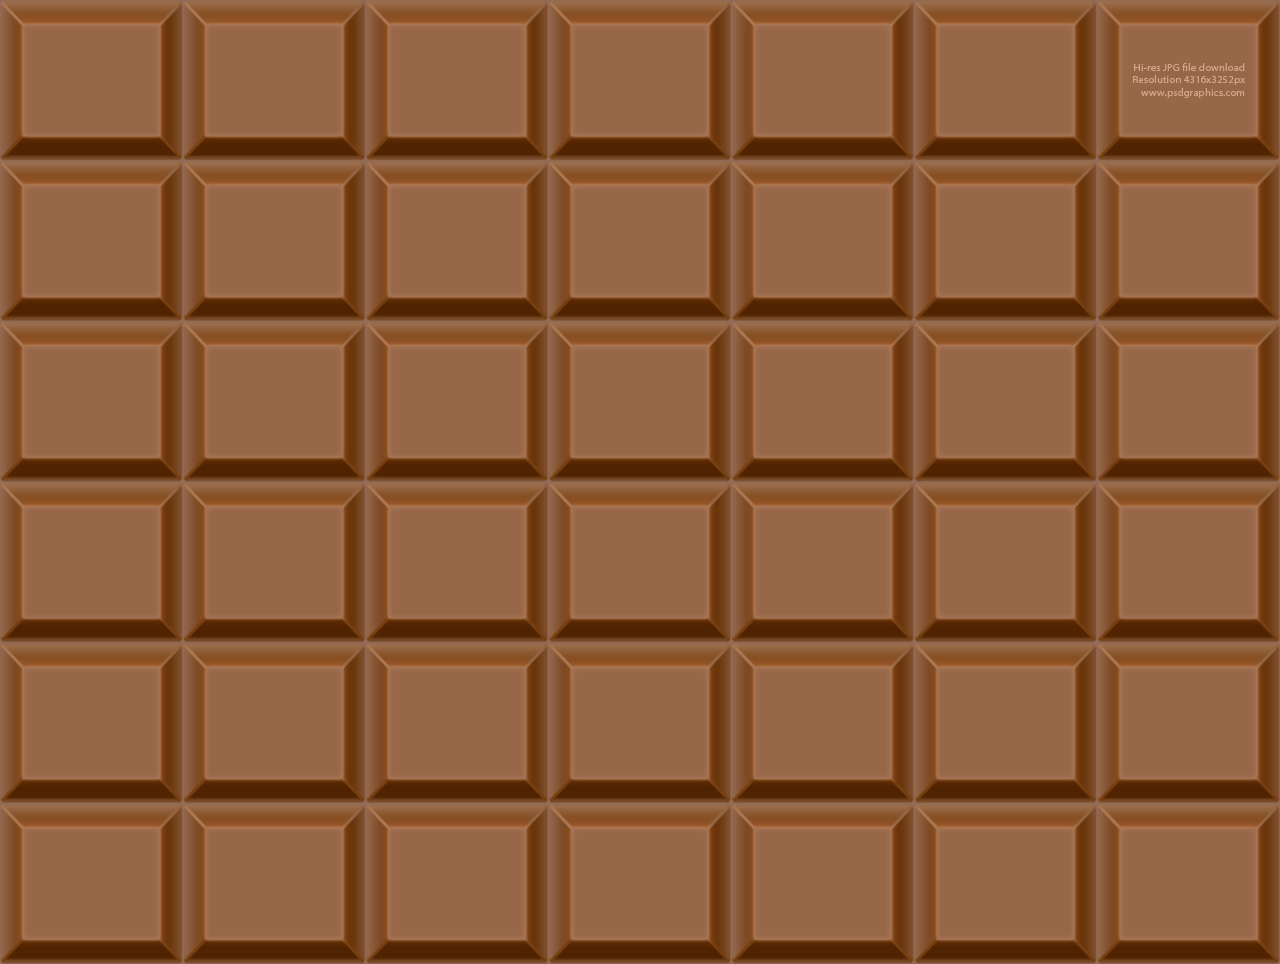 tile chocolate , texture, download photo, background, chocolate bar texture